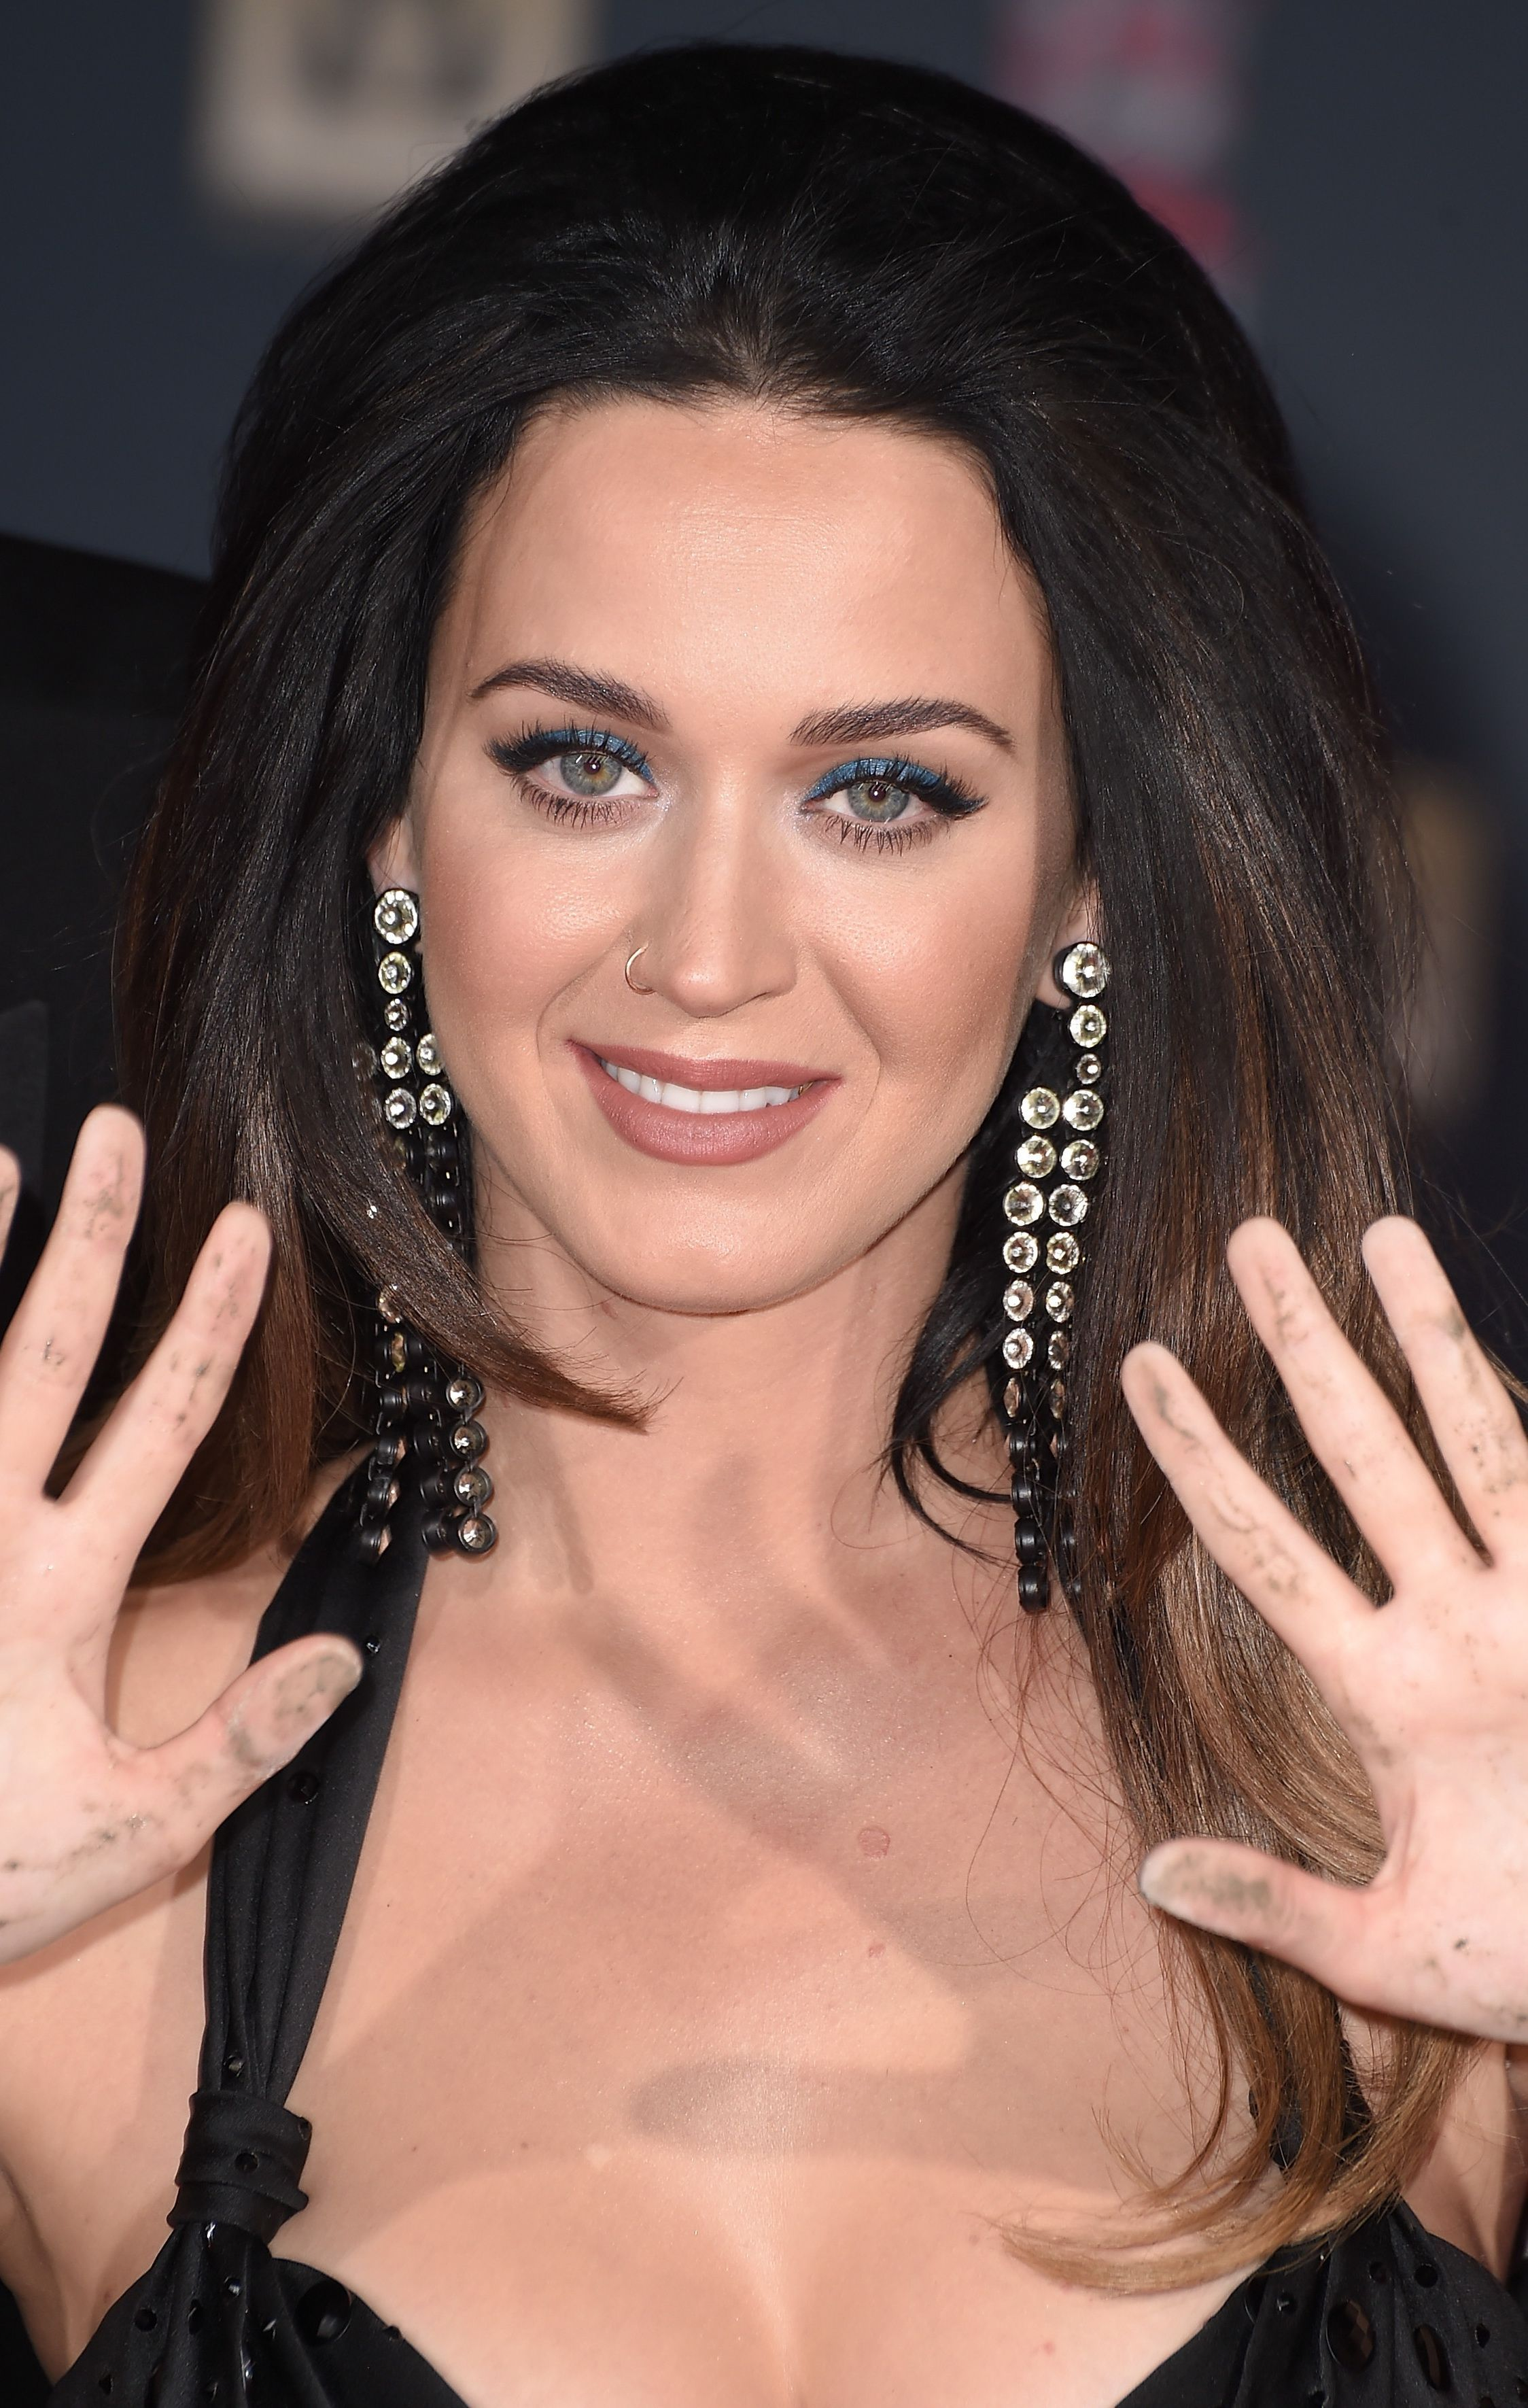 Katy-Perry-Cleavage-81